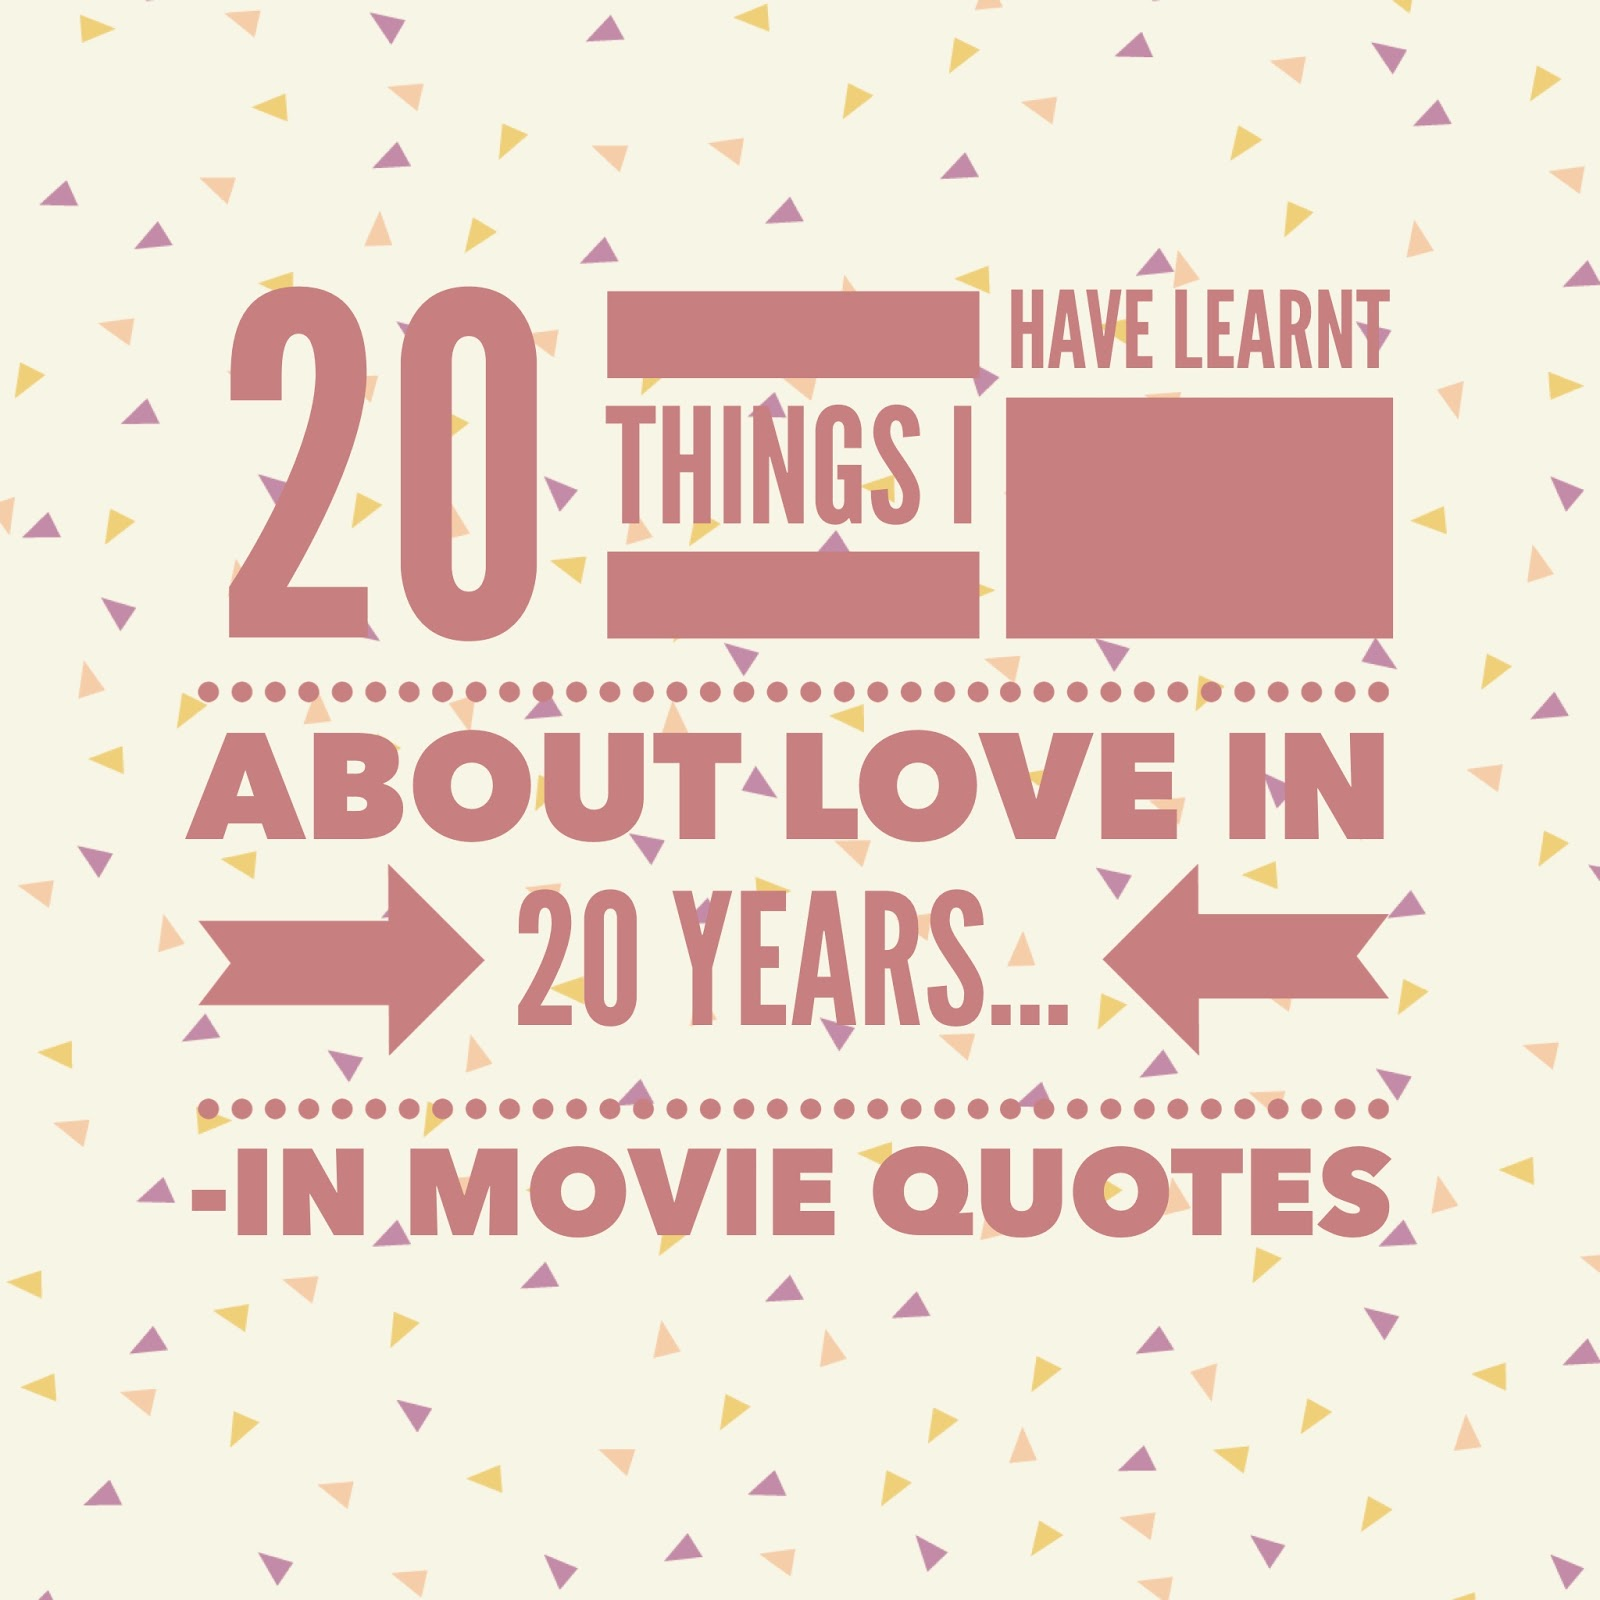 V. I BABYBRAIN: 20 Things I've Learnt about Love in 20 years…in movie quotes!